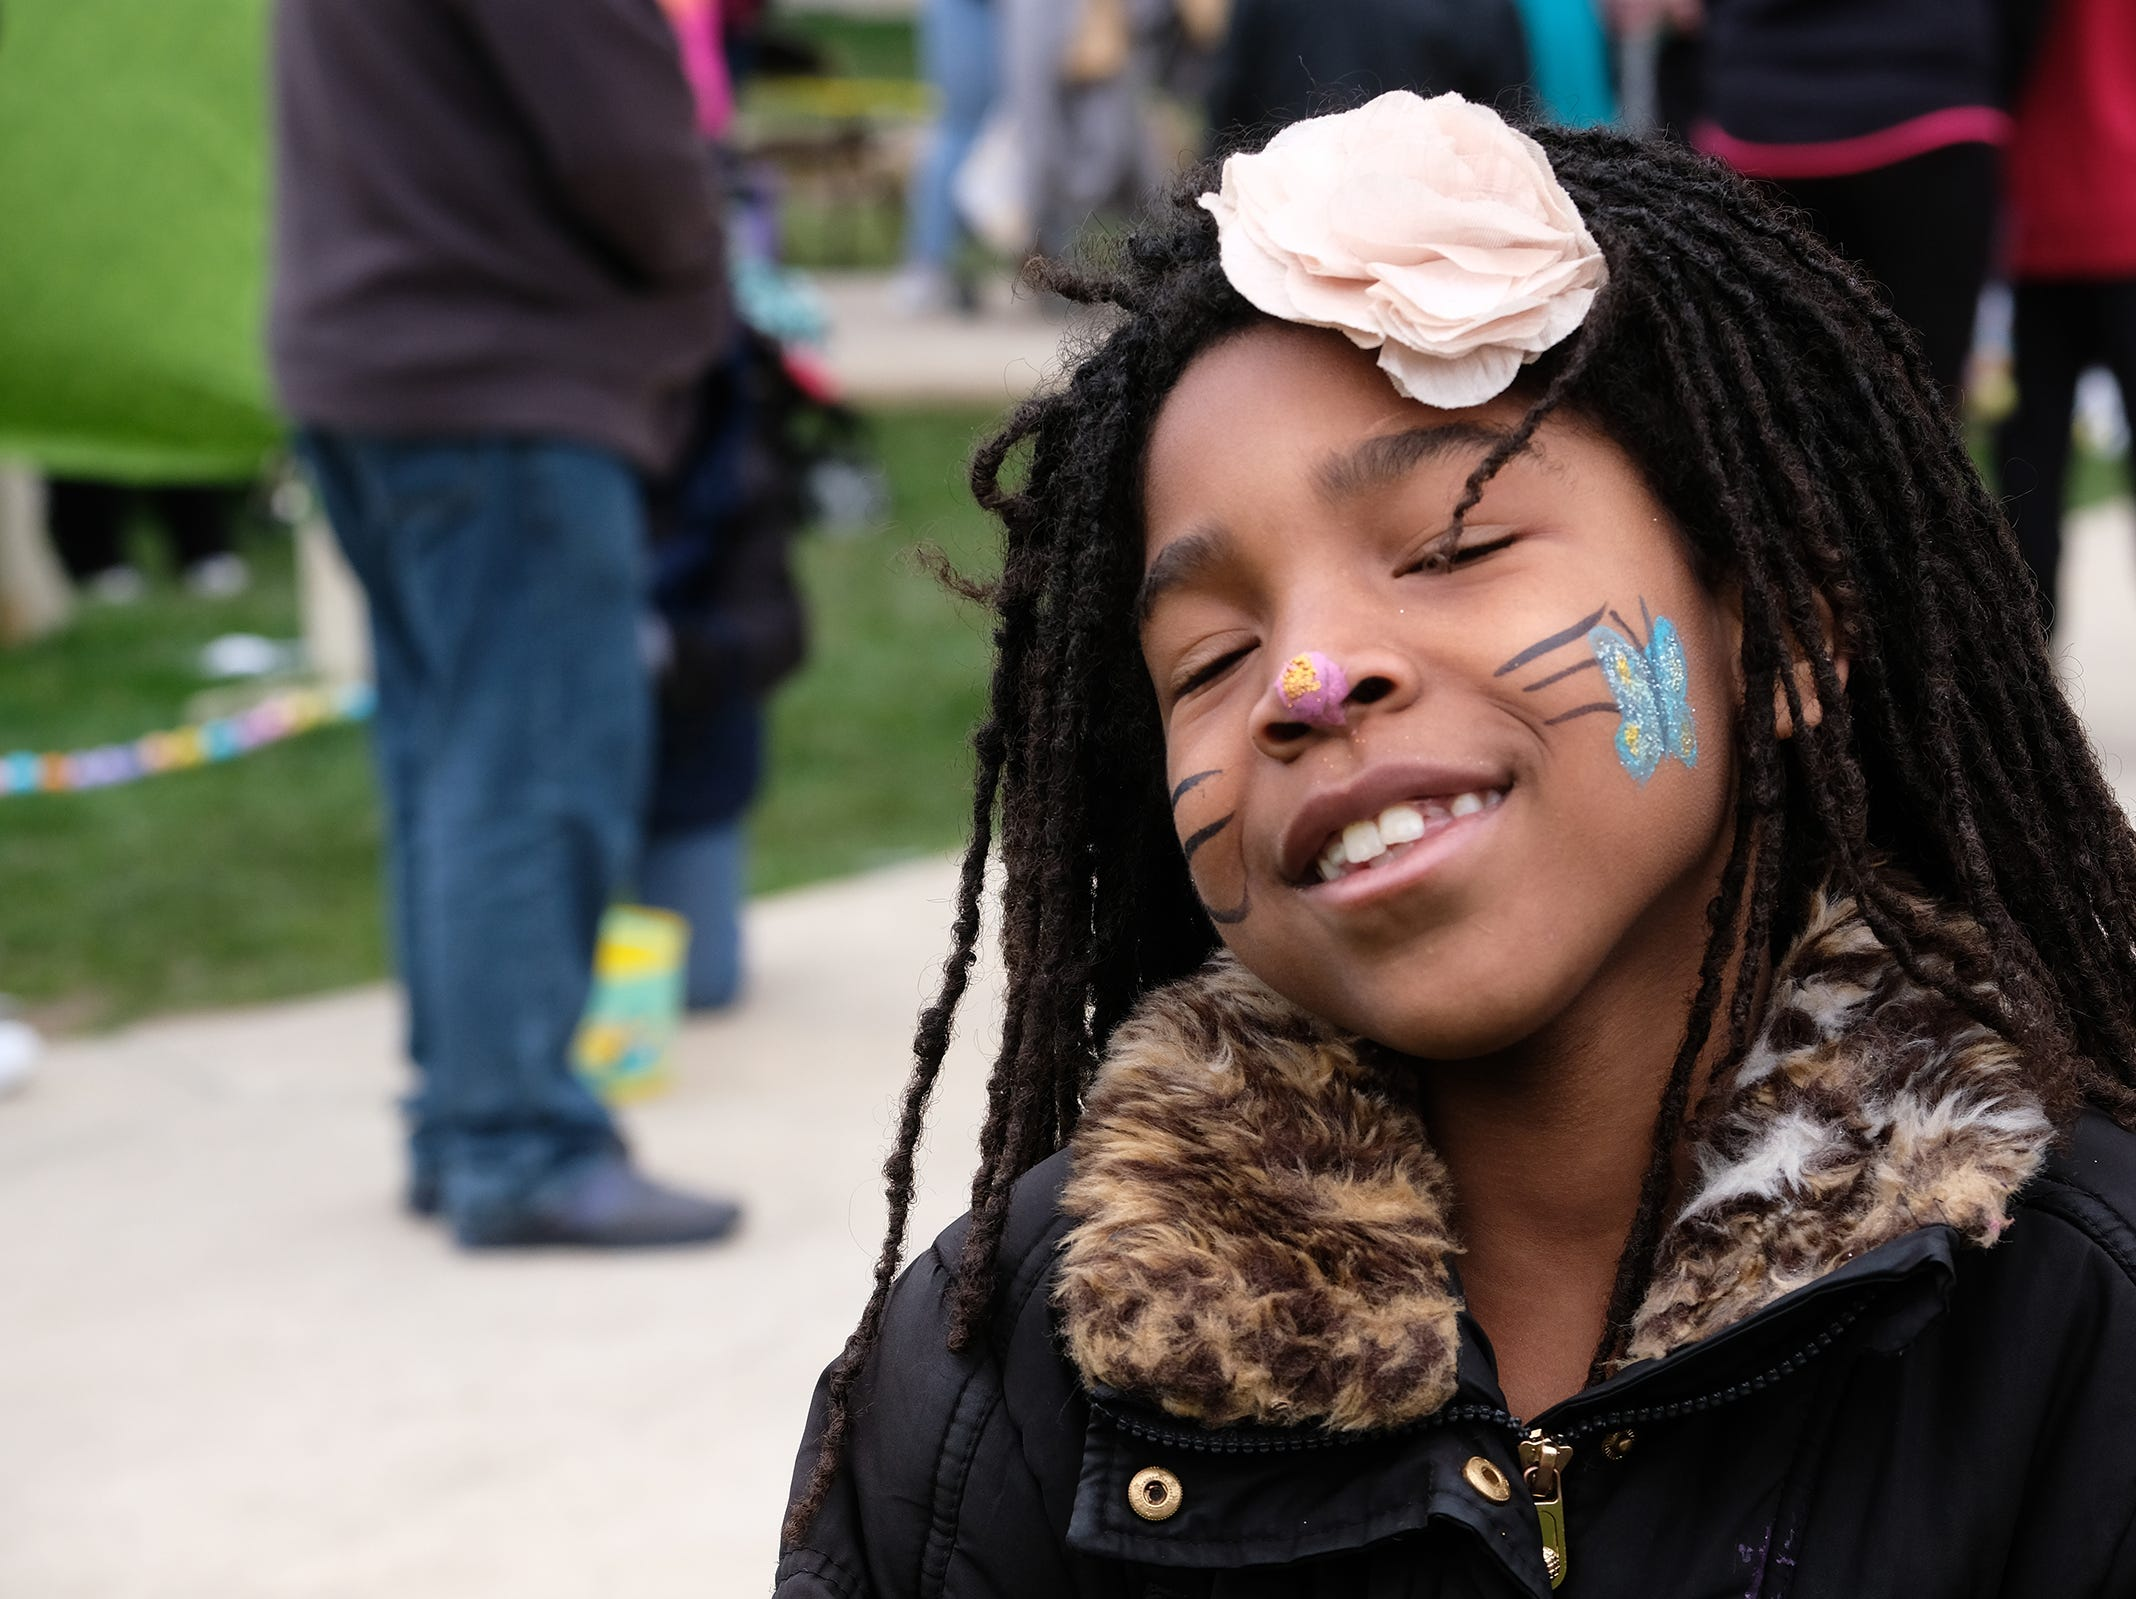 Mary Wilson, 7, from Lansing shows off her painted face at the annual Lansing Jaycees Easter Egg Hunt at the Capitol Saturday, April 20, 2019.